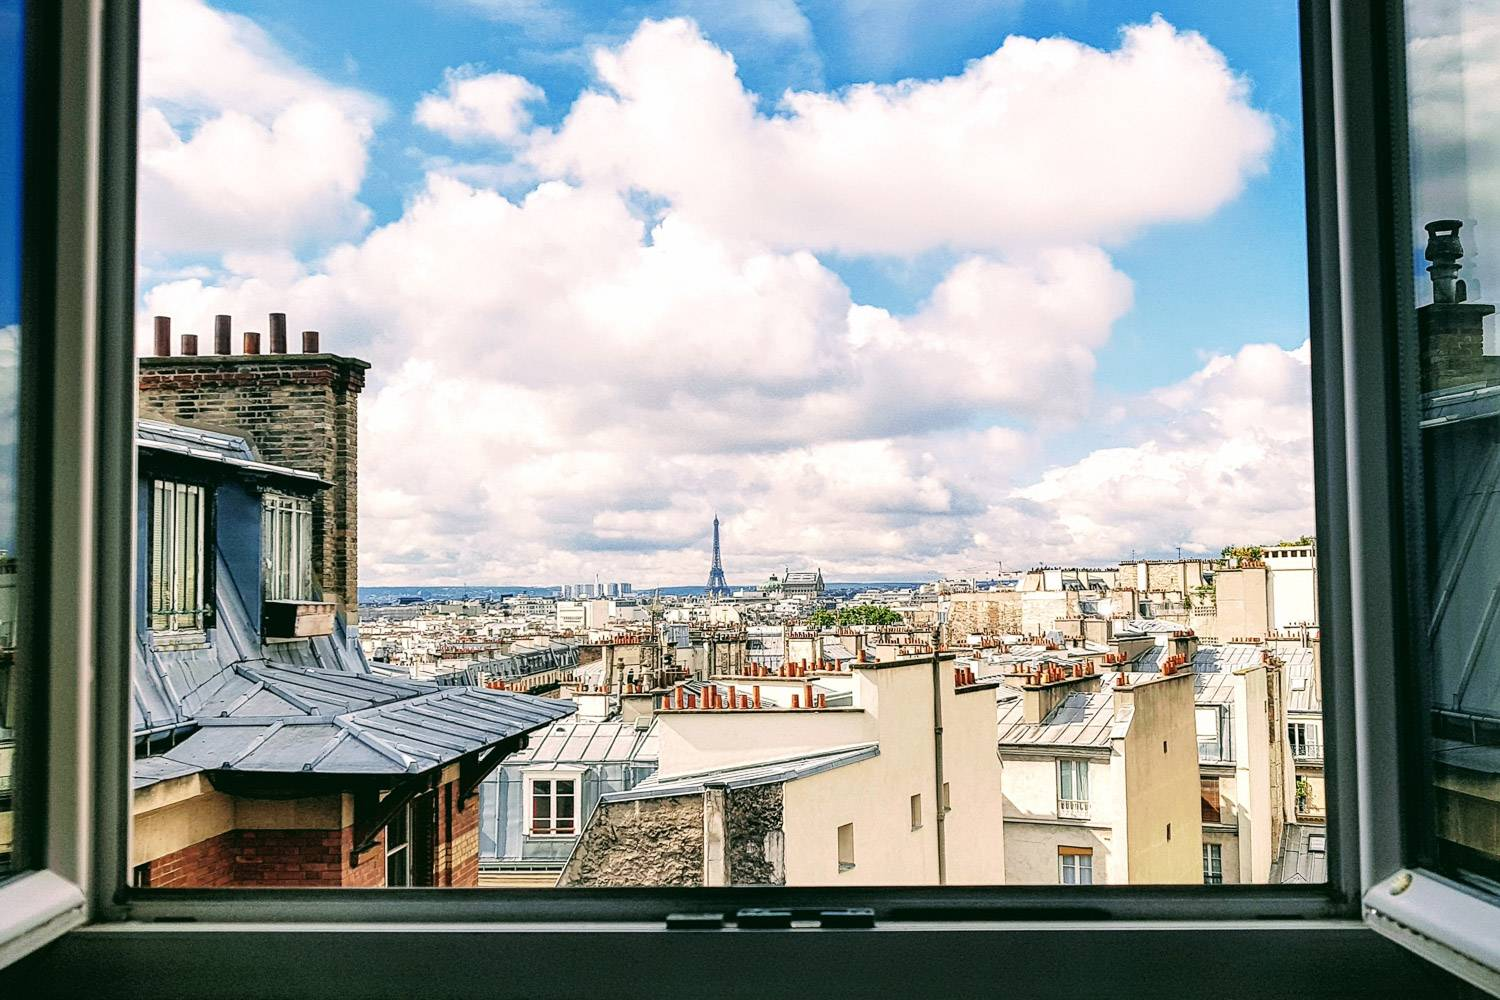 Image of an open window with views of the Eiffel Tower and Paris rooftops.